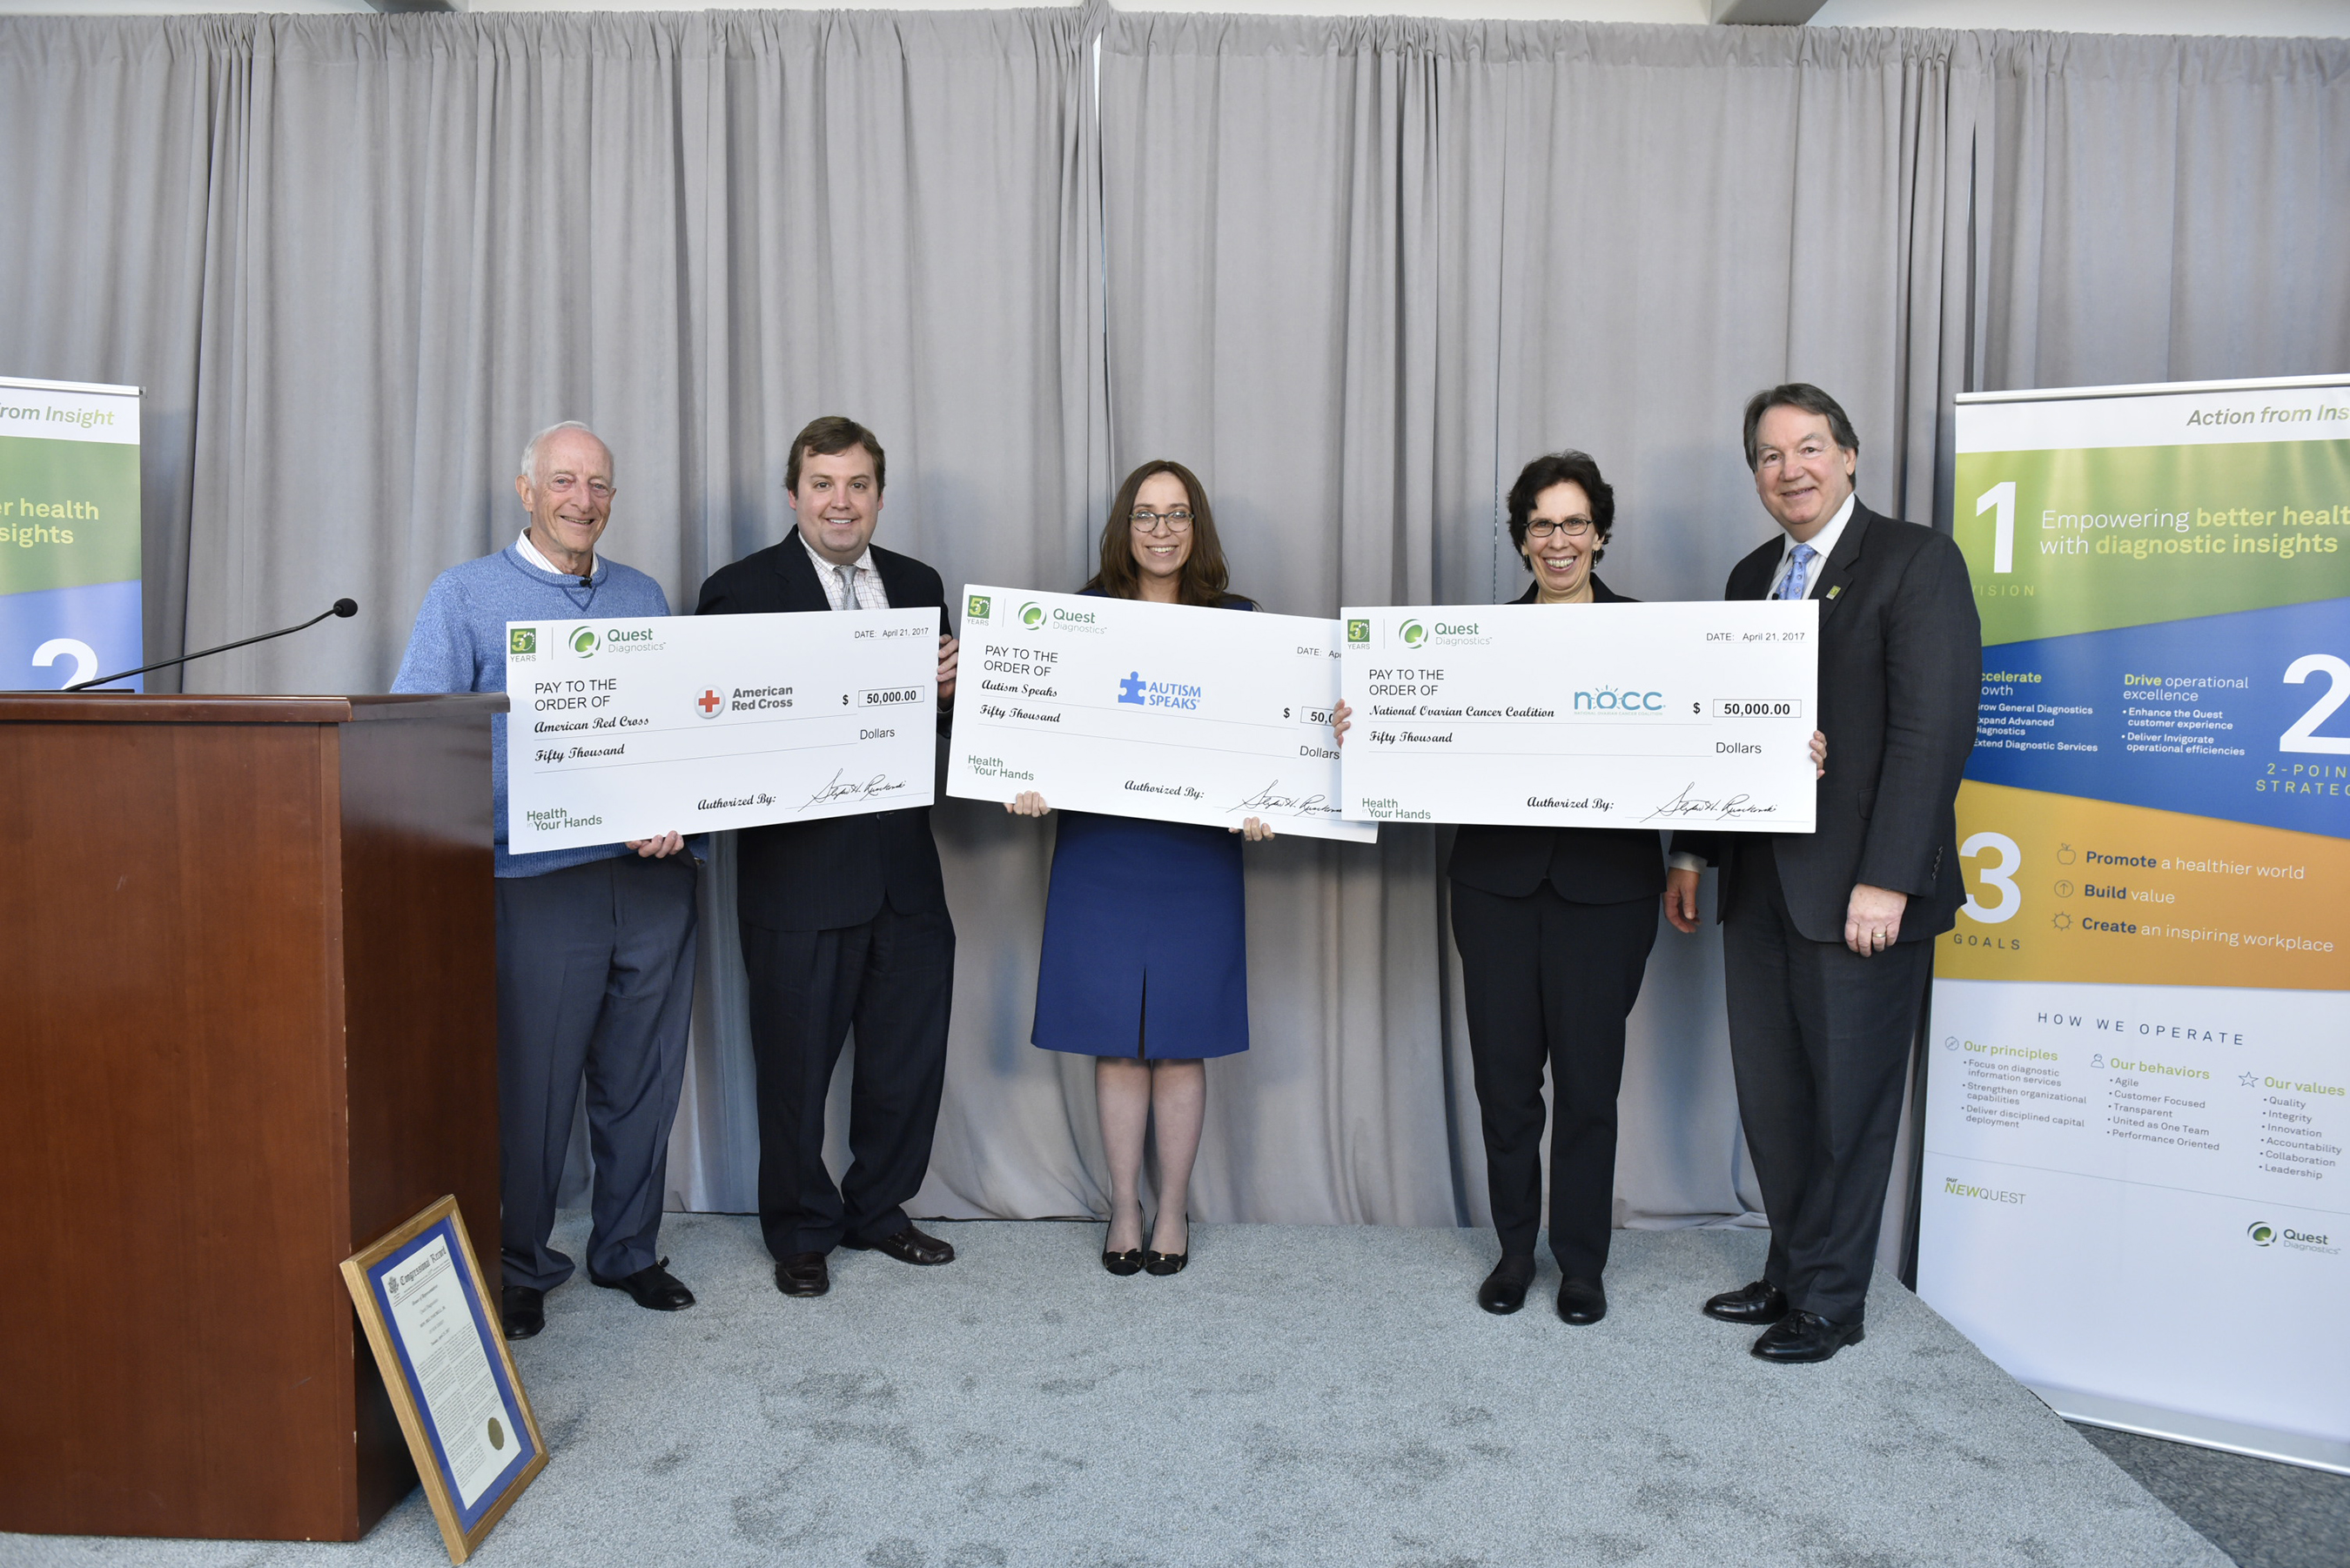 Representatives from the American Red Cross, National Ovarian Cancer Coalition and Autism Speaks accept their Health In Your Hands Grants in celebration of Quest's 50th anniversary